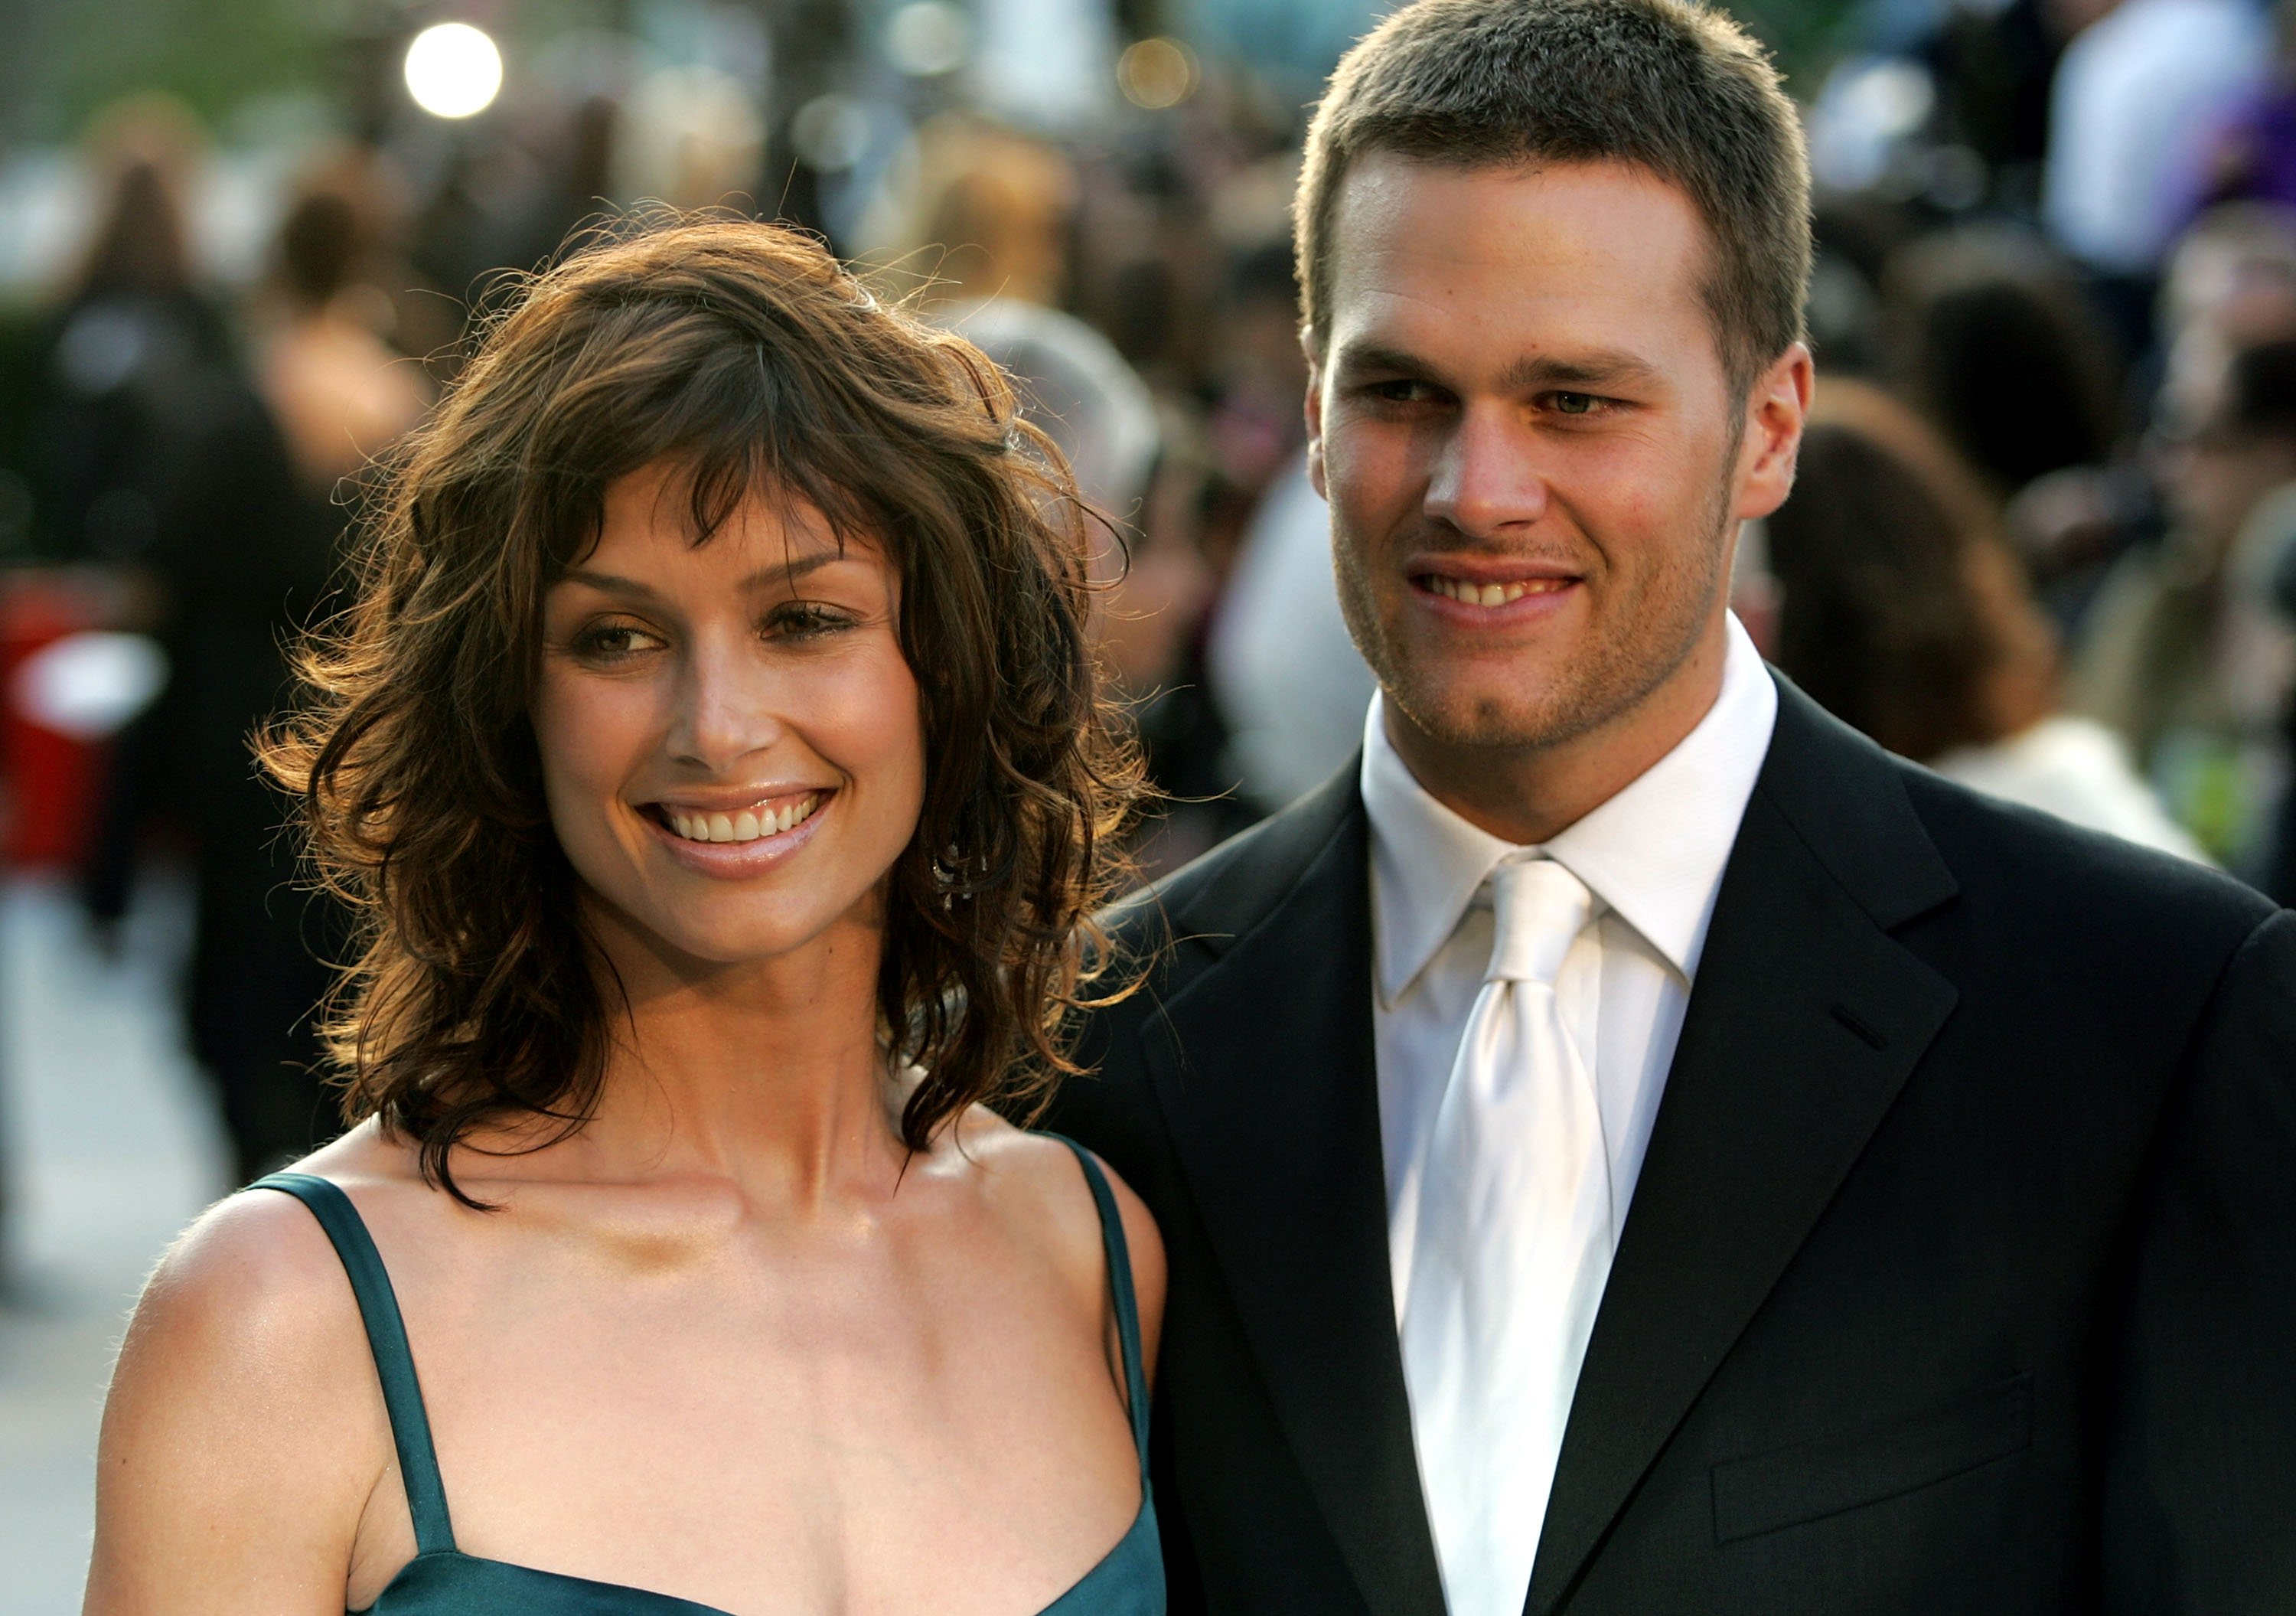 Image Credit: Getty Images/Mark Mainz | Bridget Moynahan and Tom Brady circa 2005